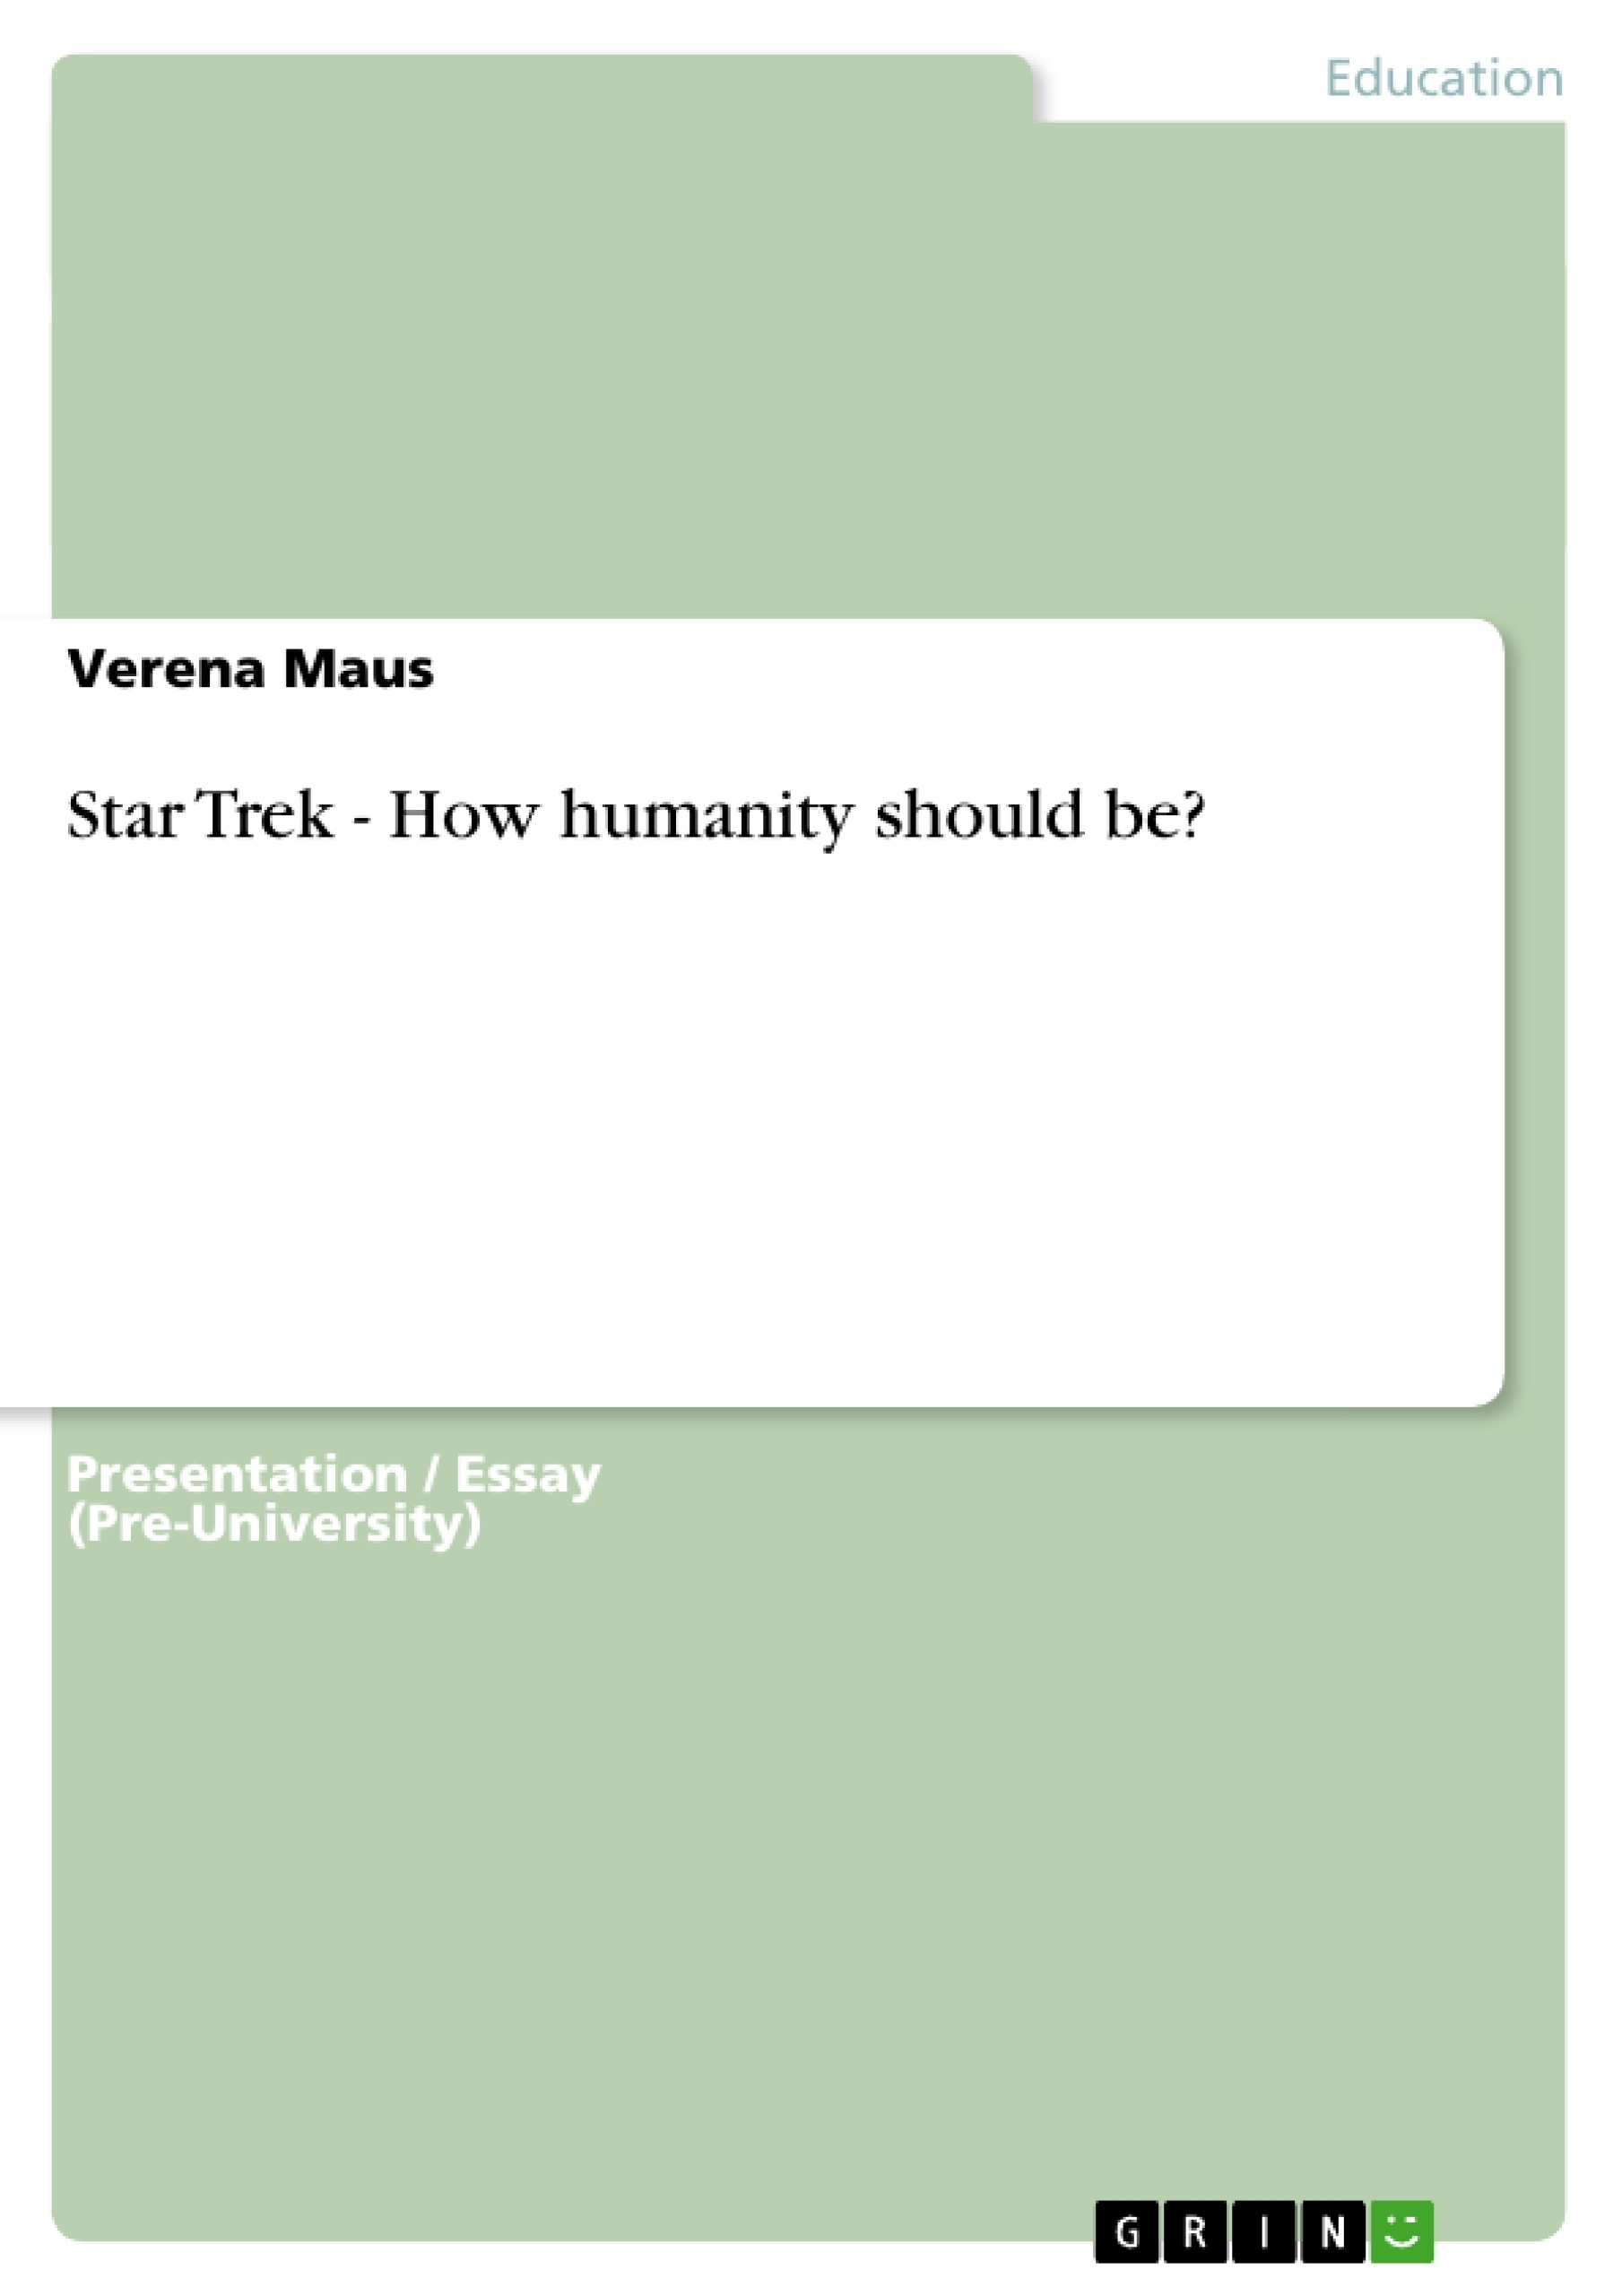 Title: Star Trek - How humanity should be?